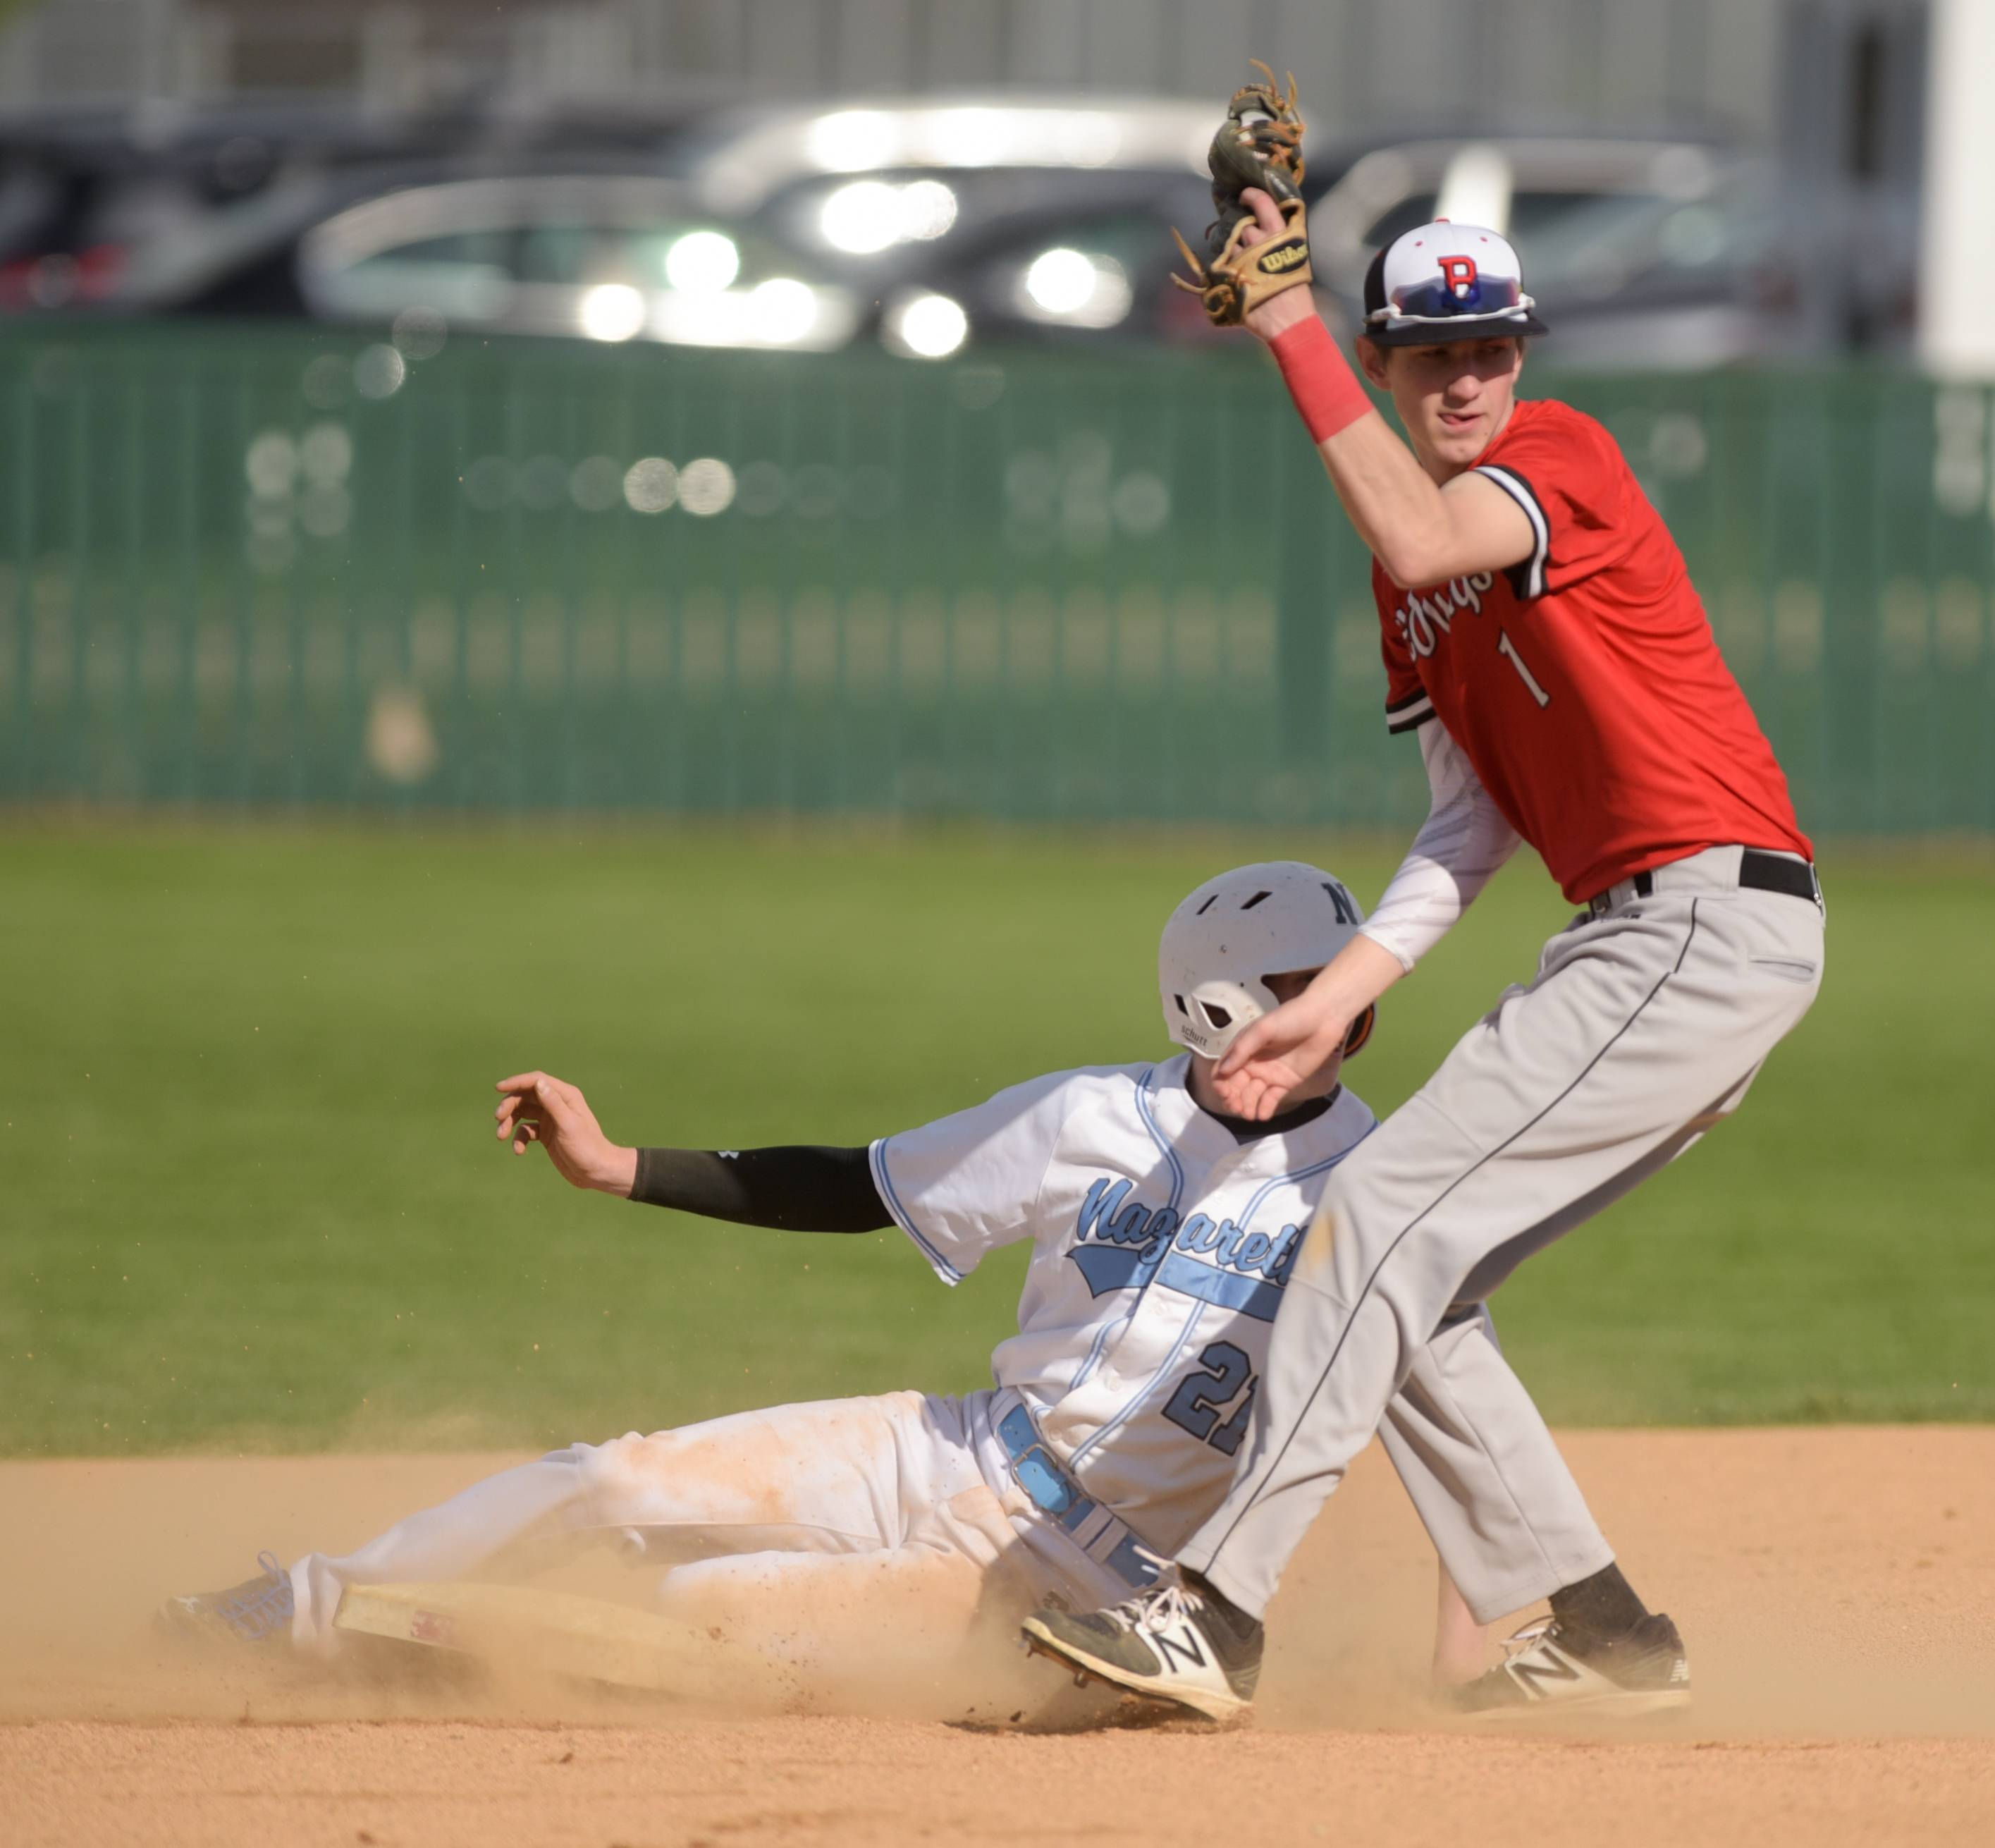 Benet Academy's Jack Schneider makes the out on Nazareth's Chancellor Roach during varsity baseball in Lisle, April 18, 2017.